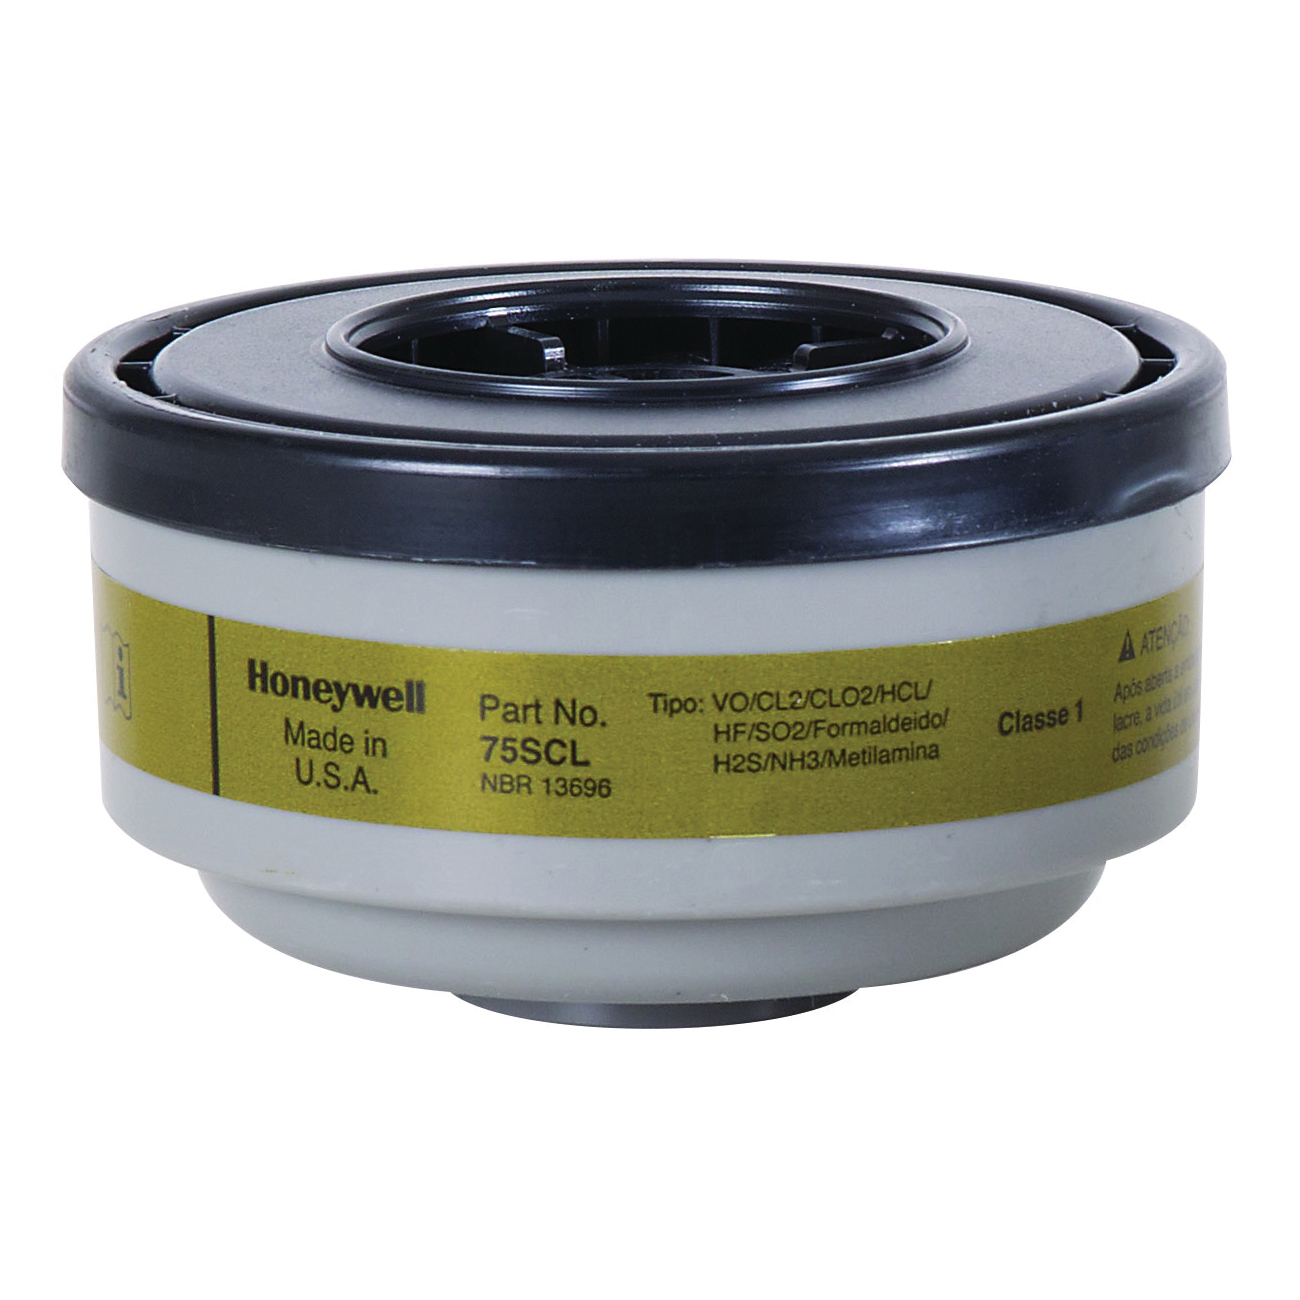 North® by Honeywell 75SCL N Series Multi-Contaminant Respirator Cartridge, For Use With 5500, RU8500 and 7700 Series Half Mask Respirators, Olive